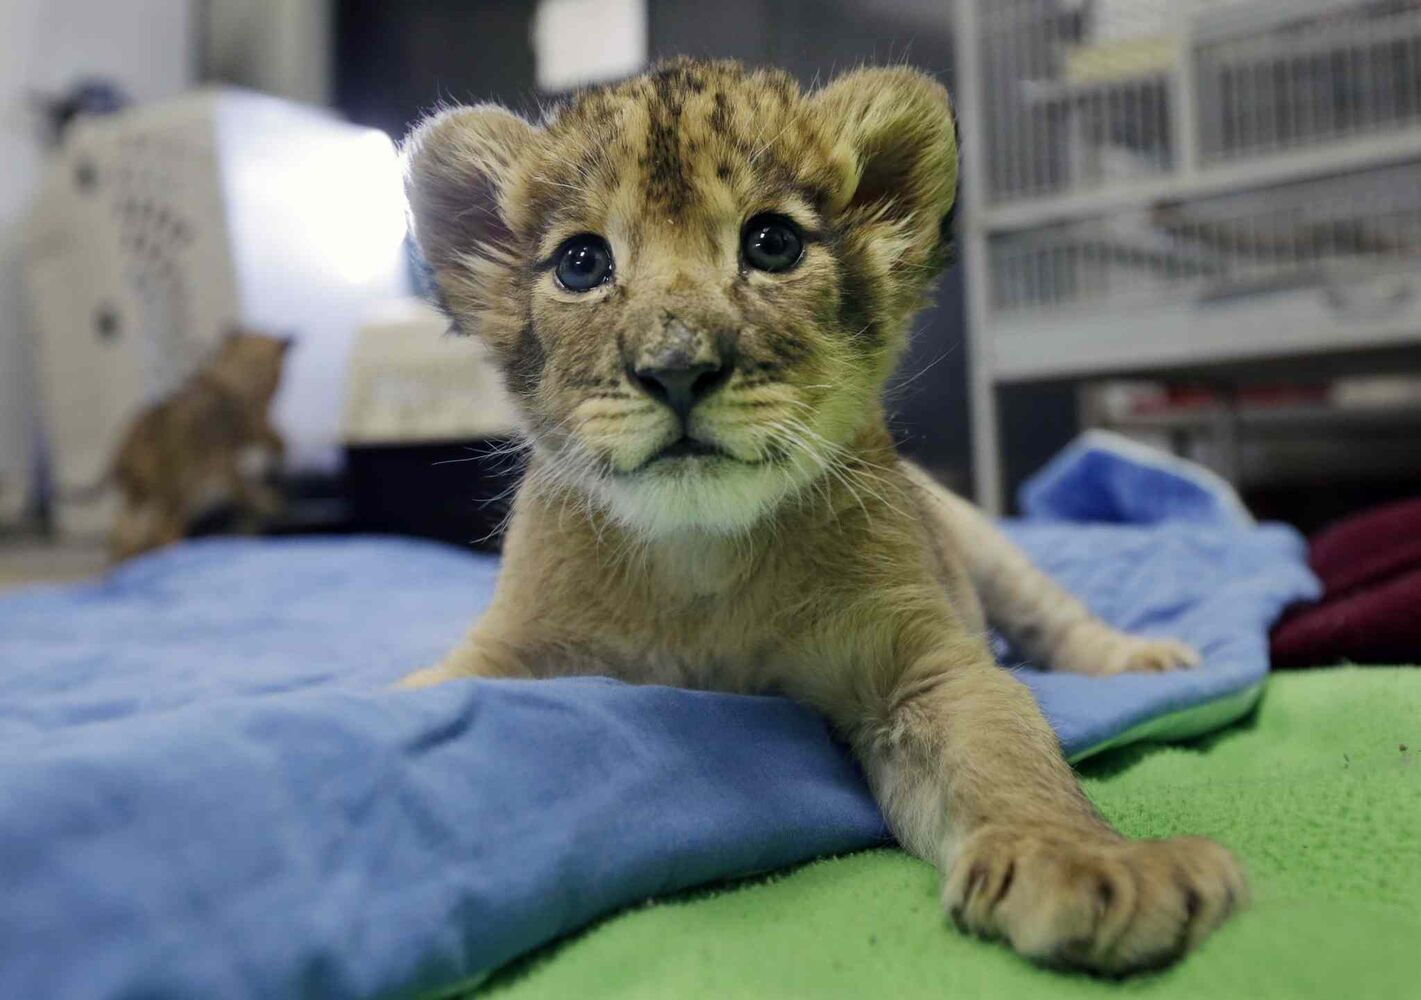 One-month old African lion cub, Kiume plays at the veterinarian office Three baby lion cubs at Six Flags Great Adventure and Safari Thursday, March 6, 2014, in Jackson, N.J. Three baby African lion cubs, Kiume, and two month old brothers, Kanu and Kondo, live at the park in central New Jersey. The park says its animal care team has become surrogate mother to the cubs due to medical distress and lack of care by their mothers. (Mel Evans / The Associated Press)